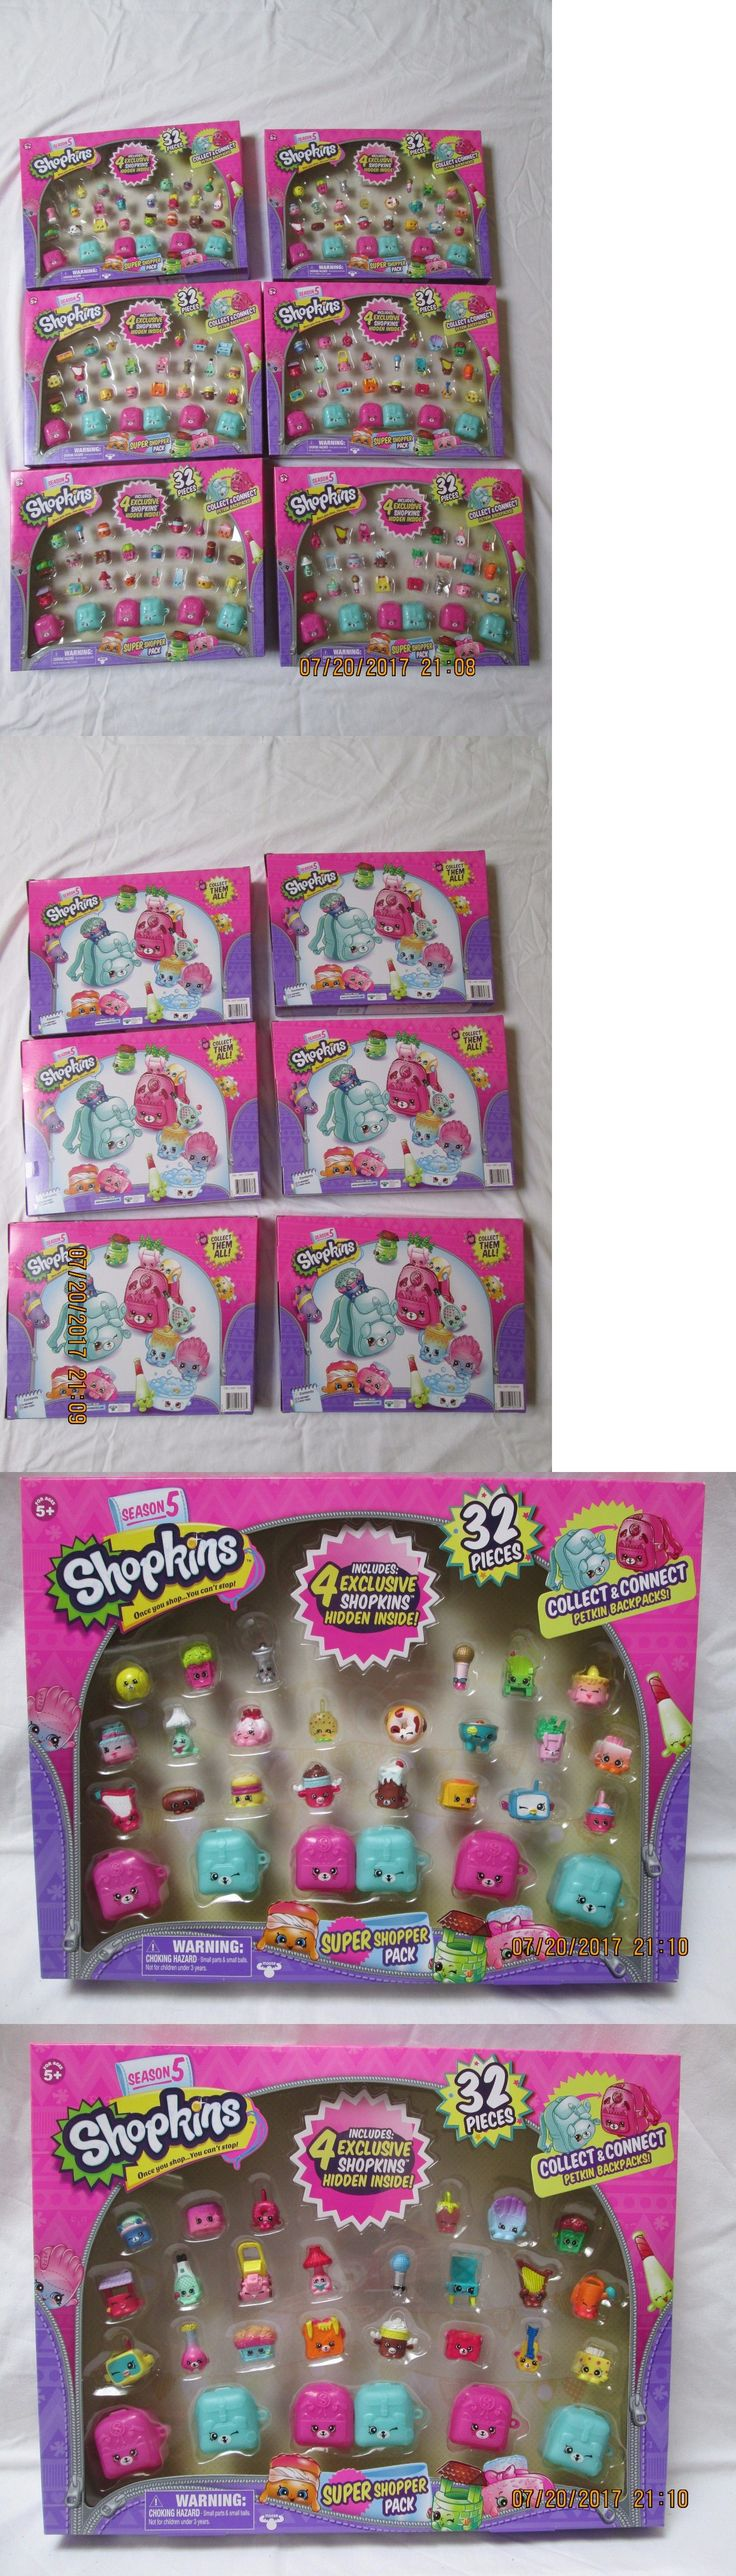 TV Movie and Character Toys 51031: Shopkins Season 5 Super Shopper Pack 192 Pieces - Complete Set Of 6 Packs -> BUY IT NOW ONLY: $189.99 on eBay!